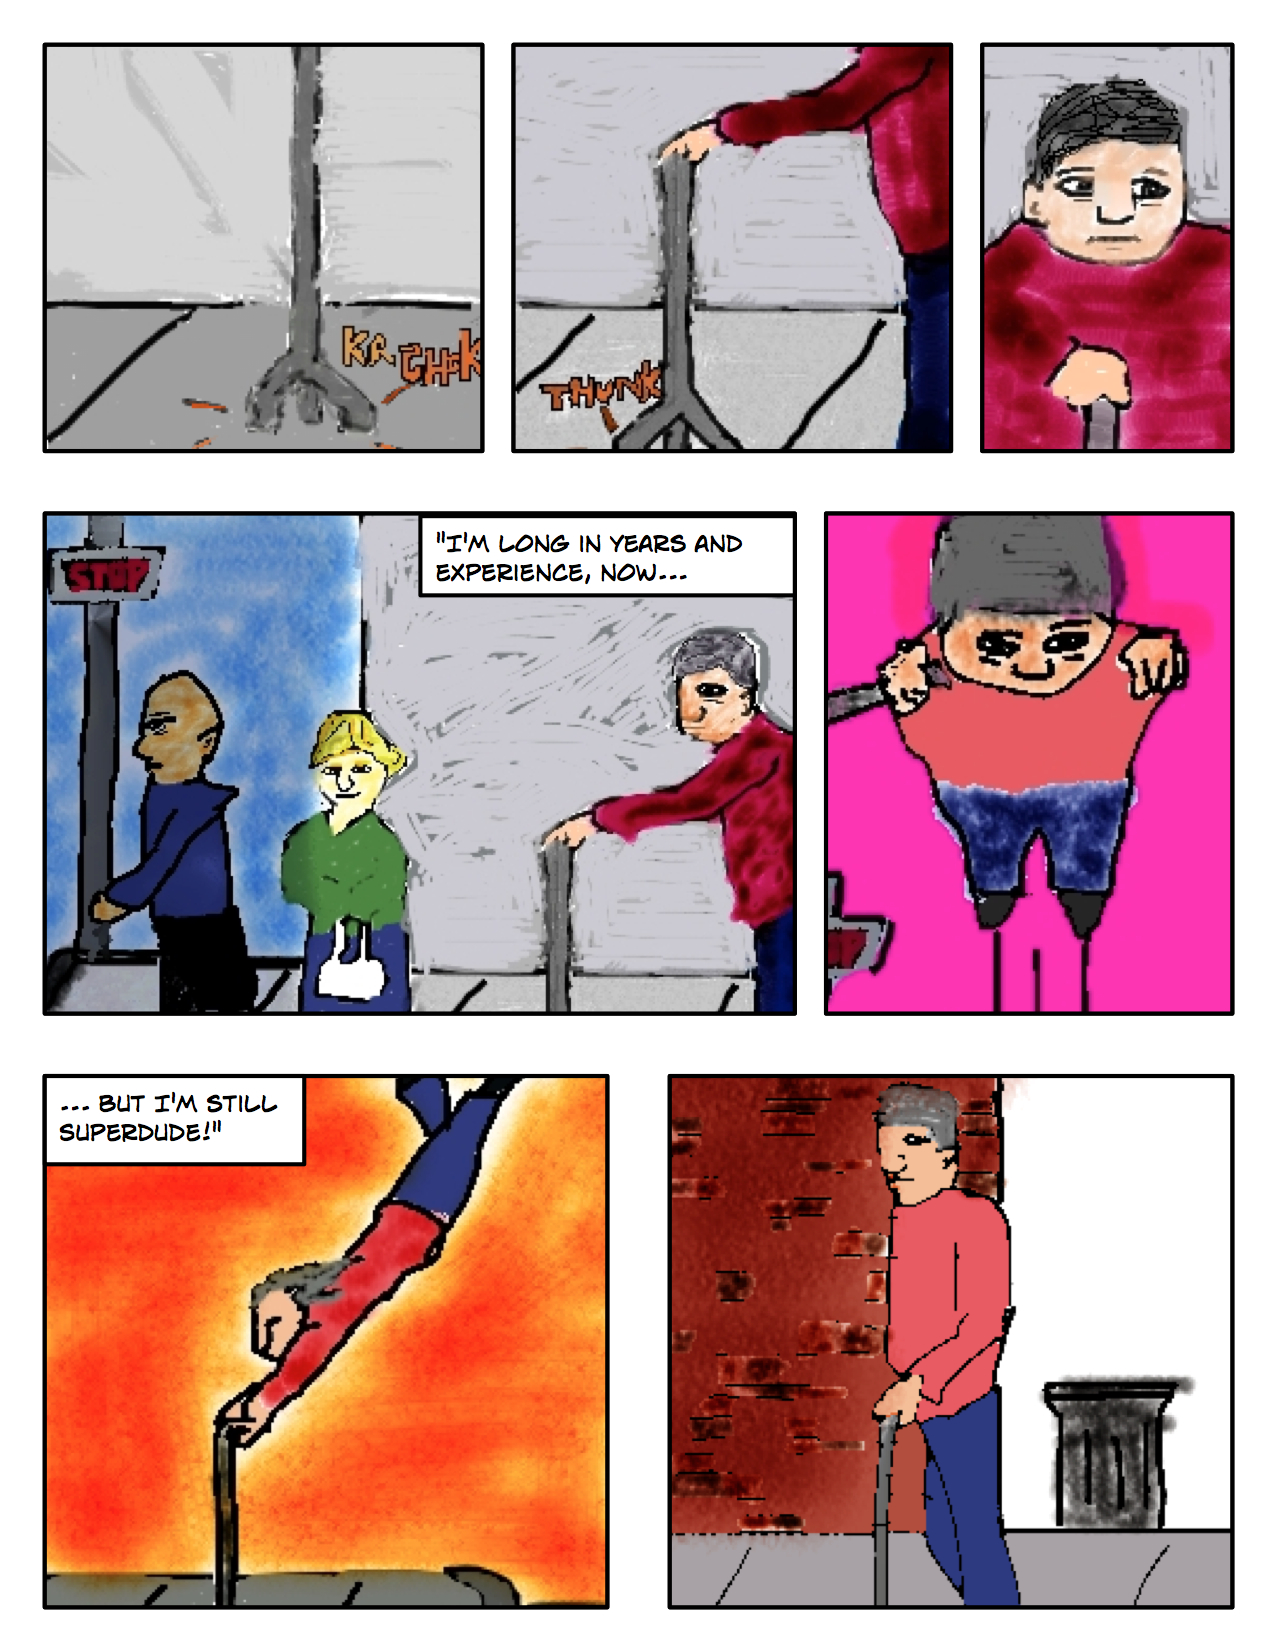 """Superdude Returns: Fall of a Hero – Page 1 """"Flying but Walking with a Cane"""""""